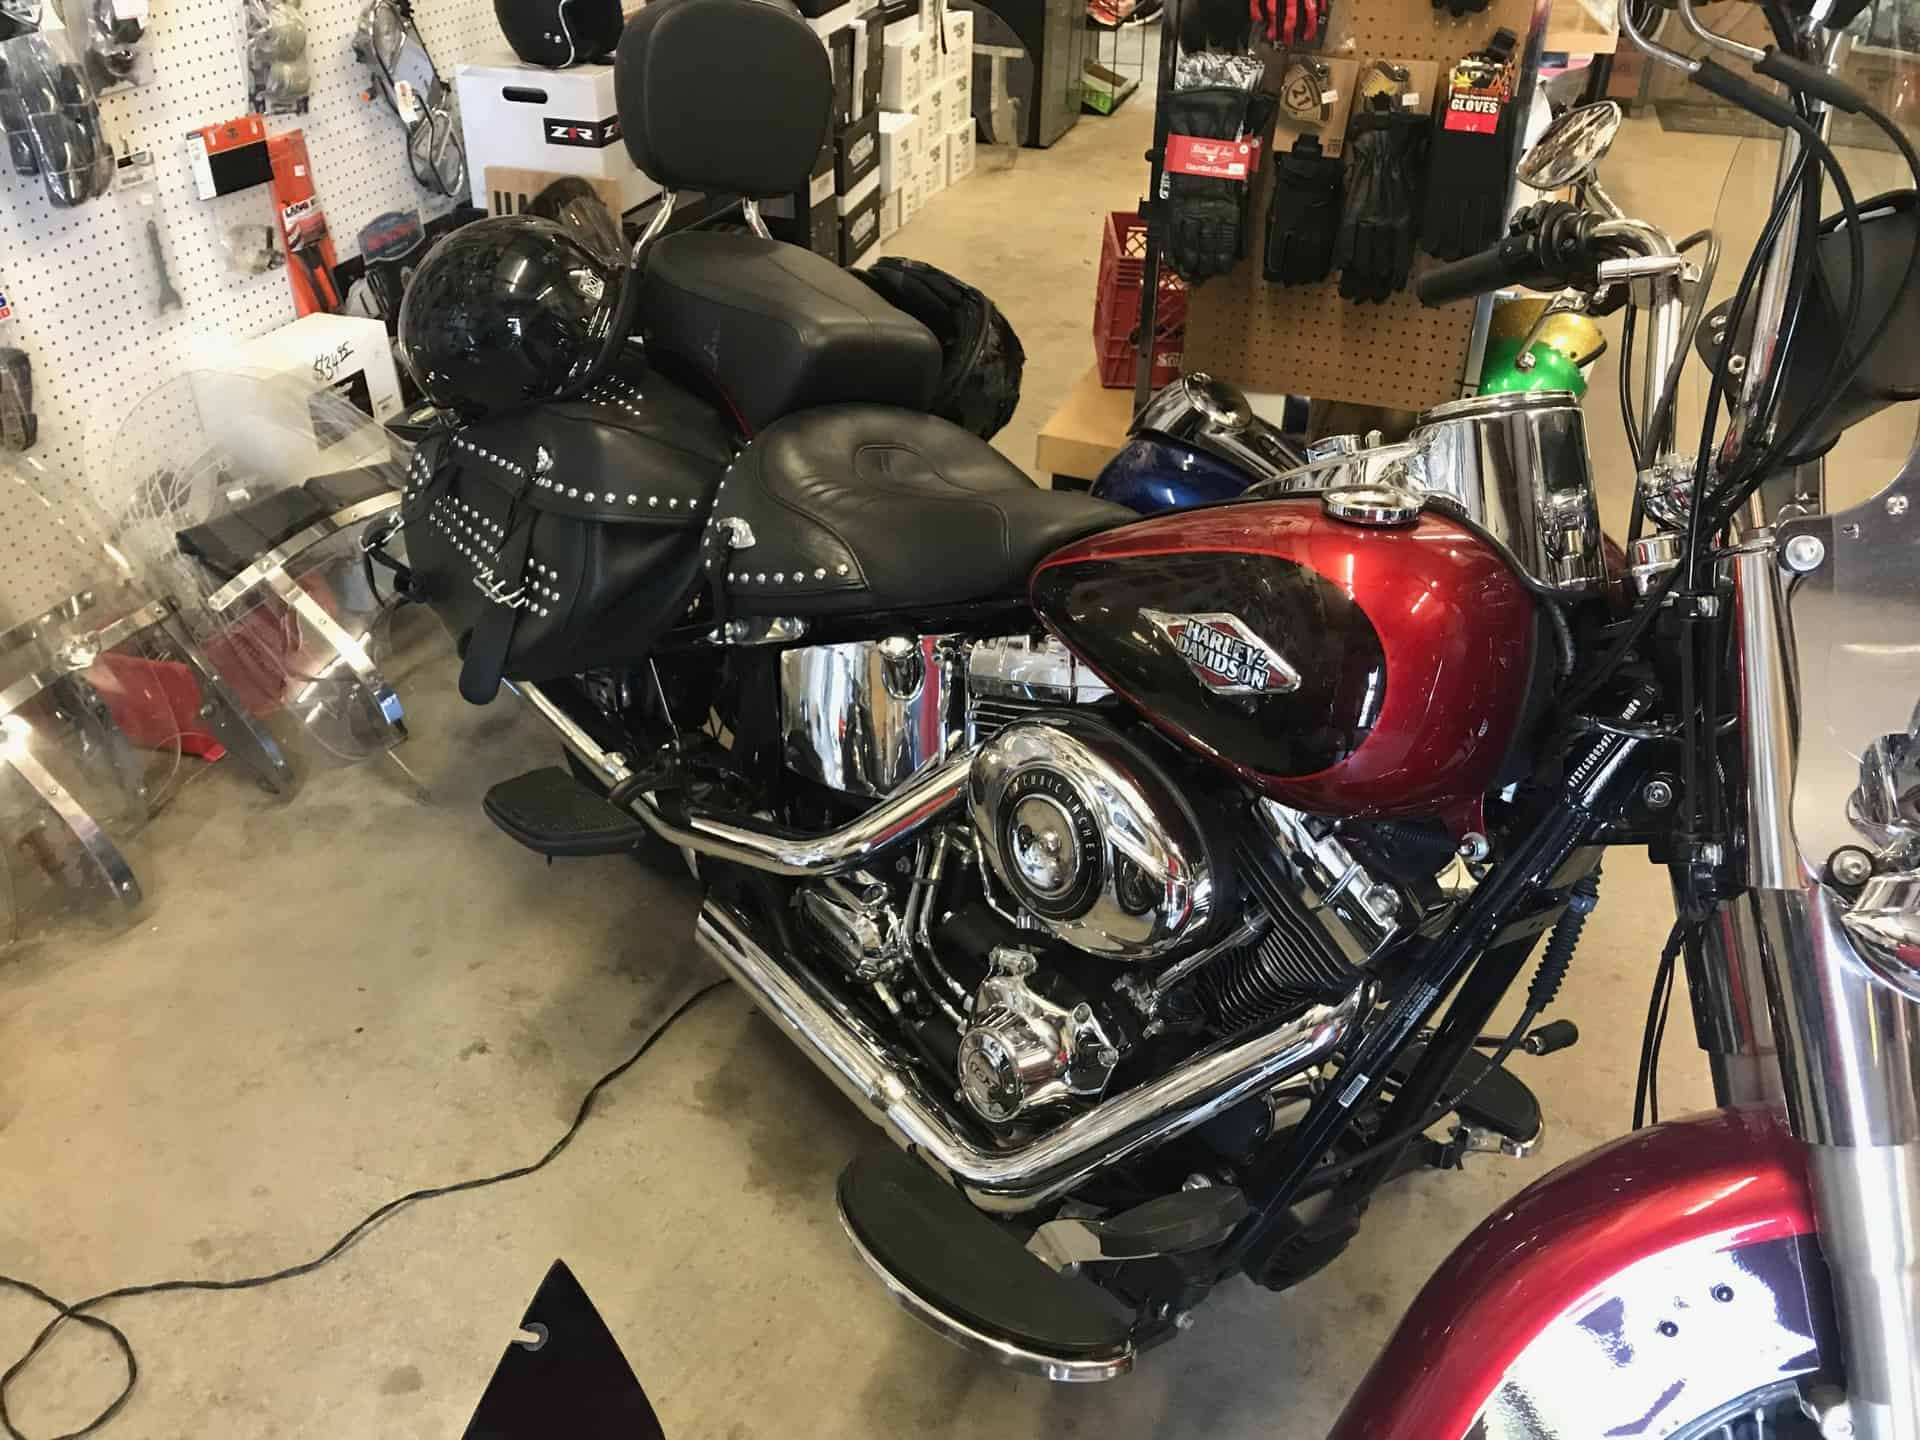 https://knobtowncycle com/service/motorcycle-collision-repair/ 2018